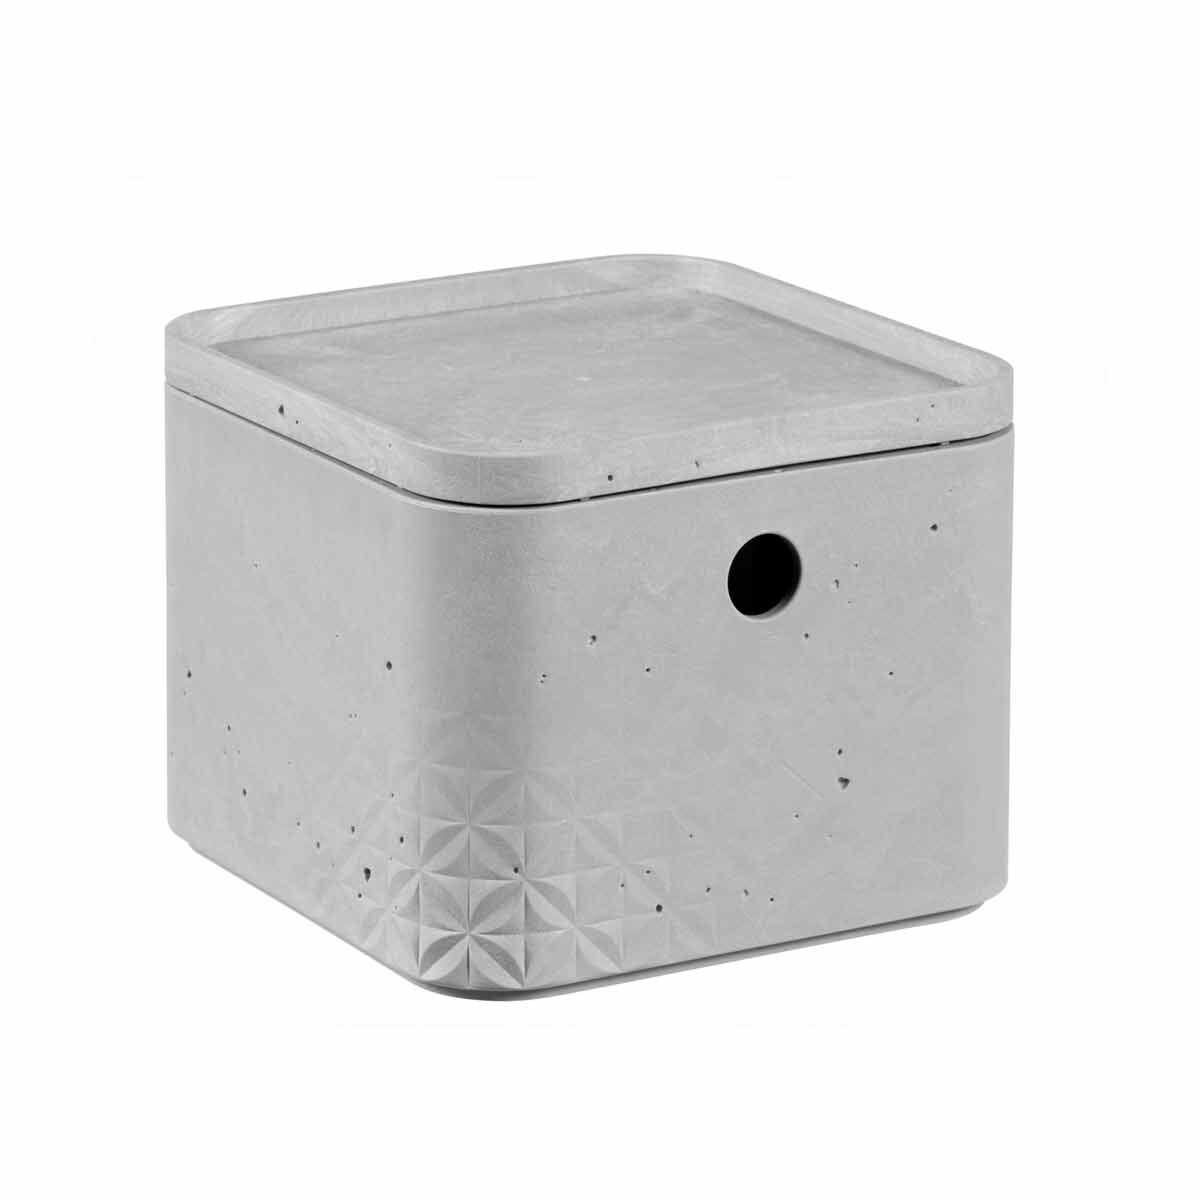 Curver Beton Storage Box with Lid 3 Litres Pack of 6